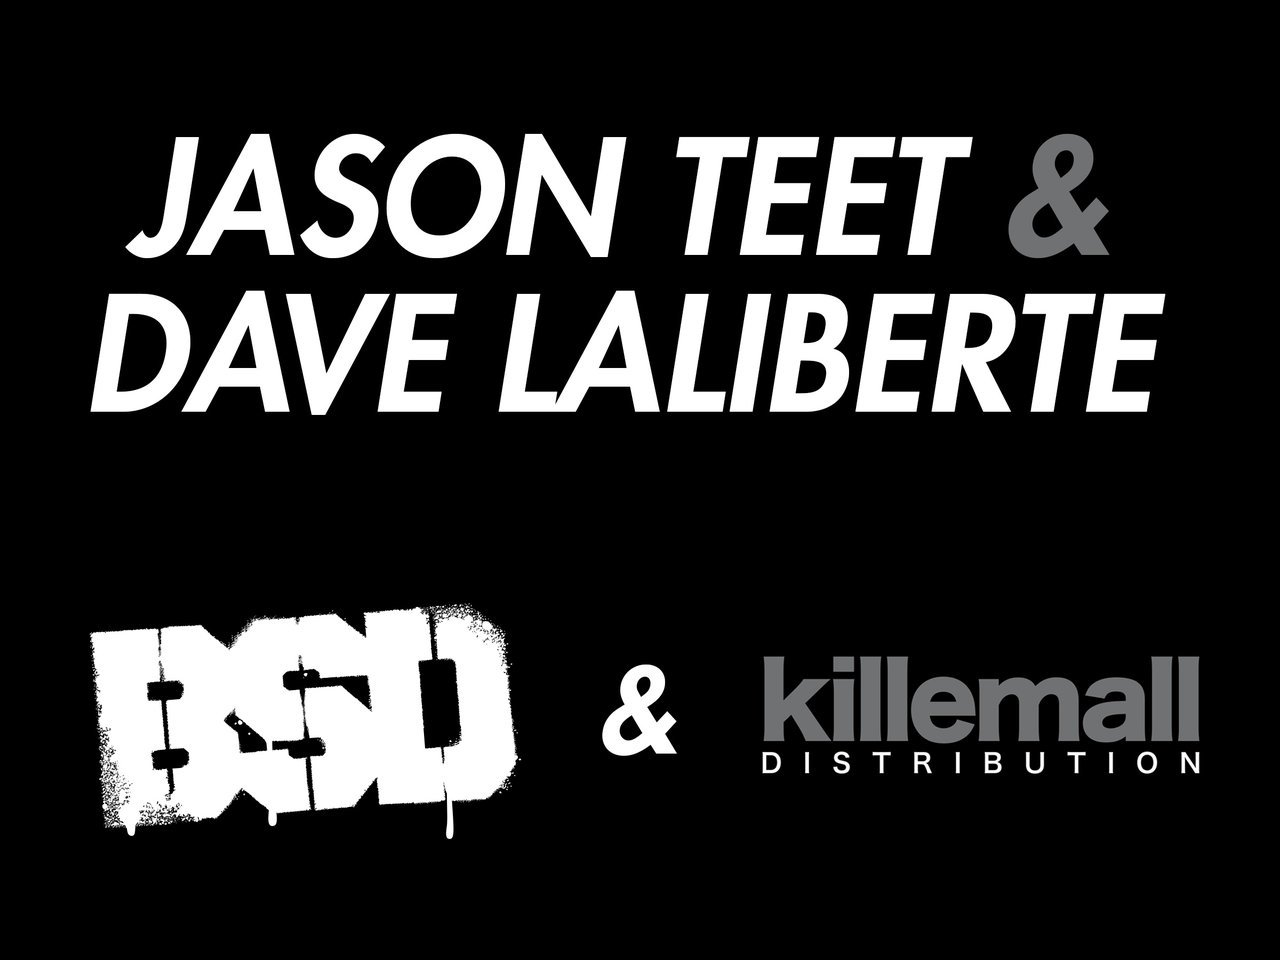 Jason Teet and Dave Laliberte